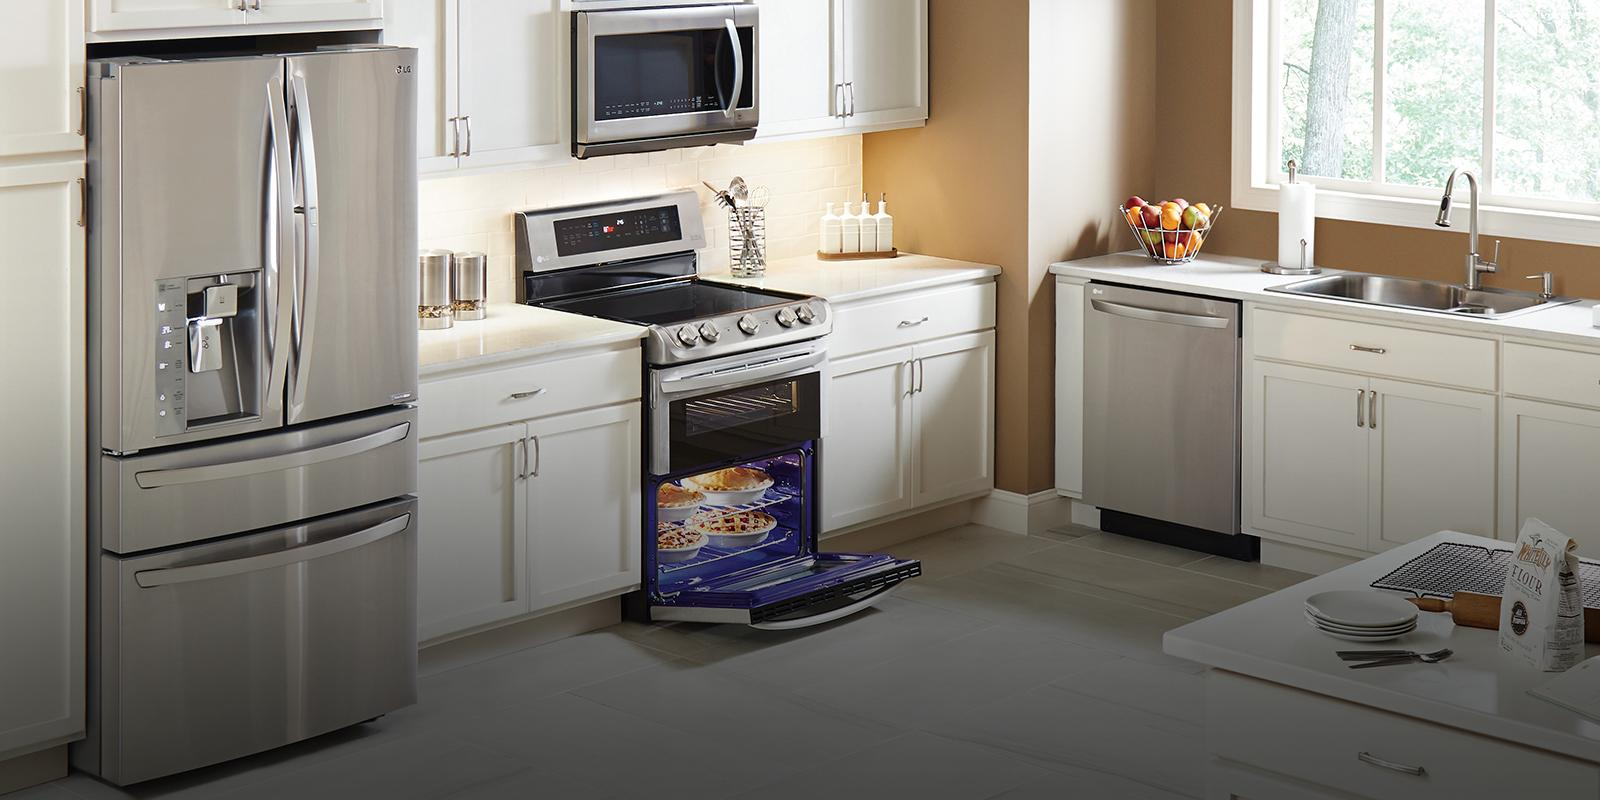 Uncategorized Kitchen Appliances Usa lg appliances compare kitchen home usa bring the cutting edge back to kitchen